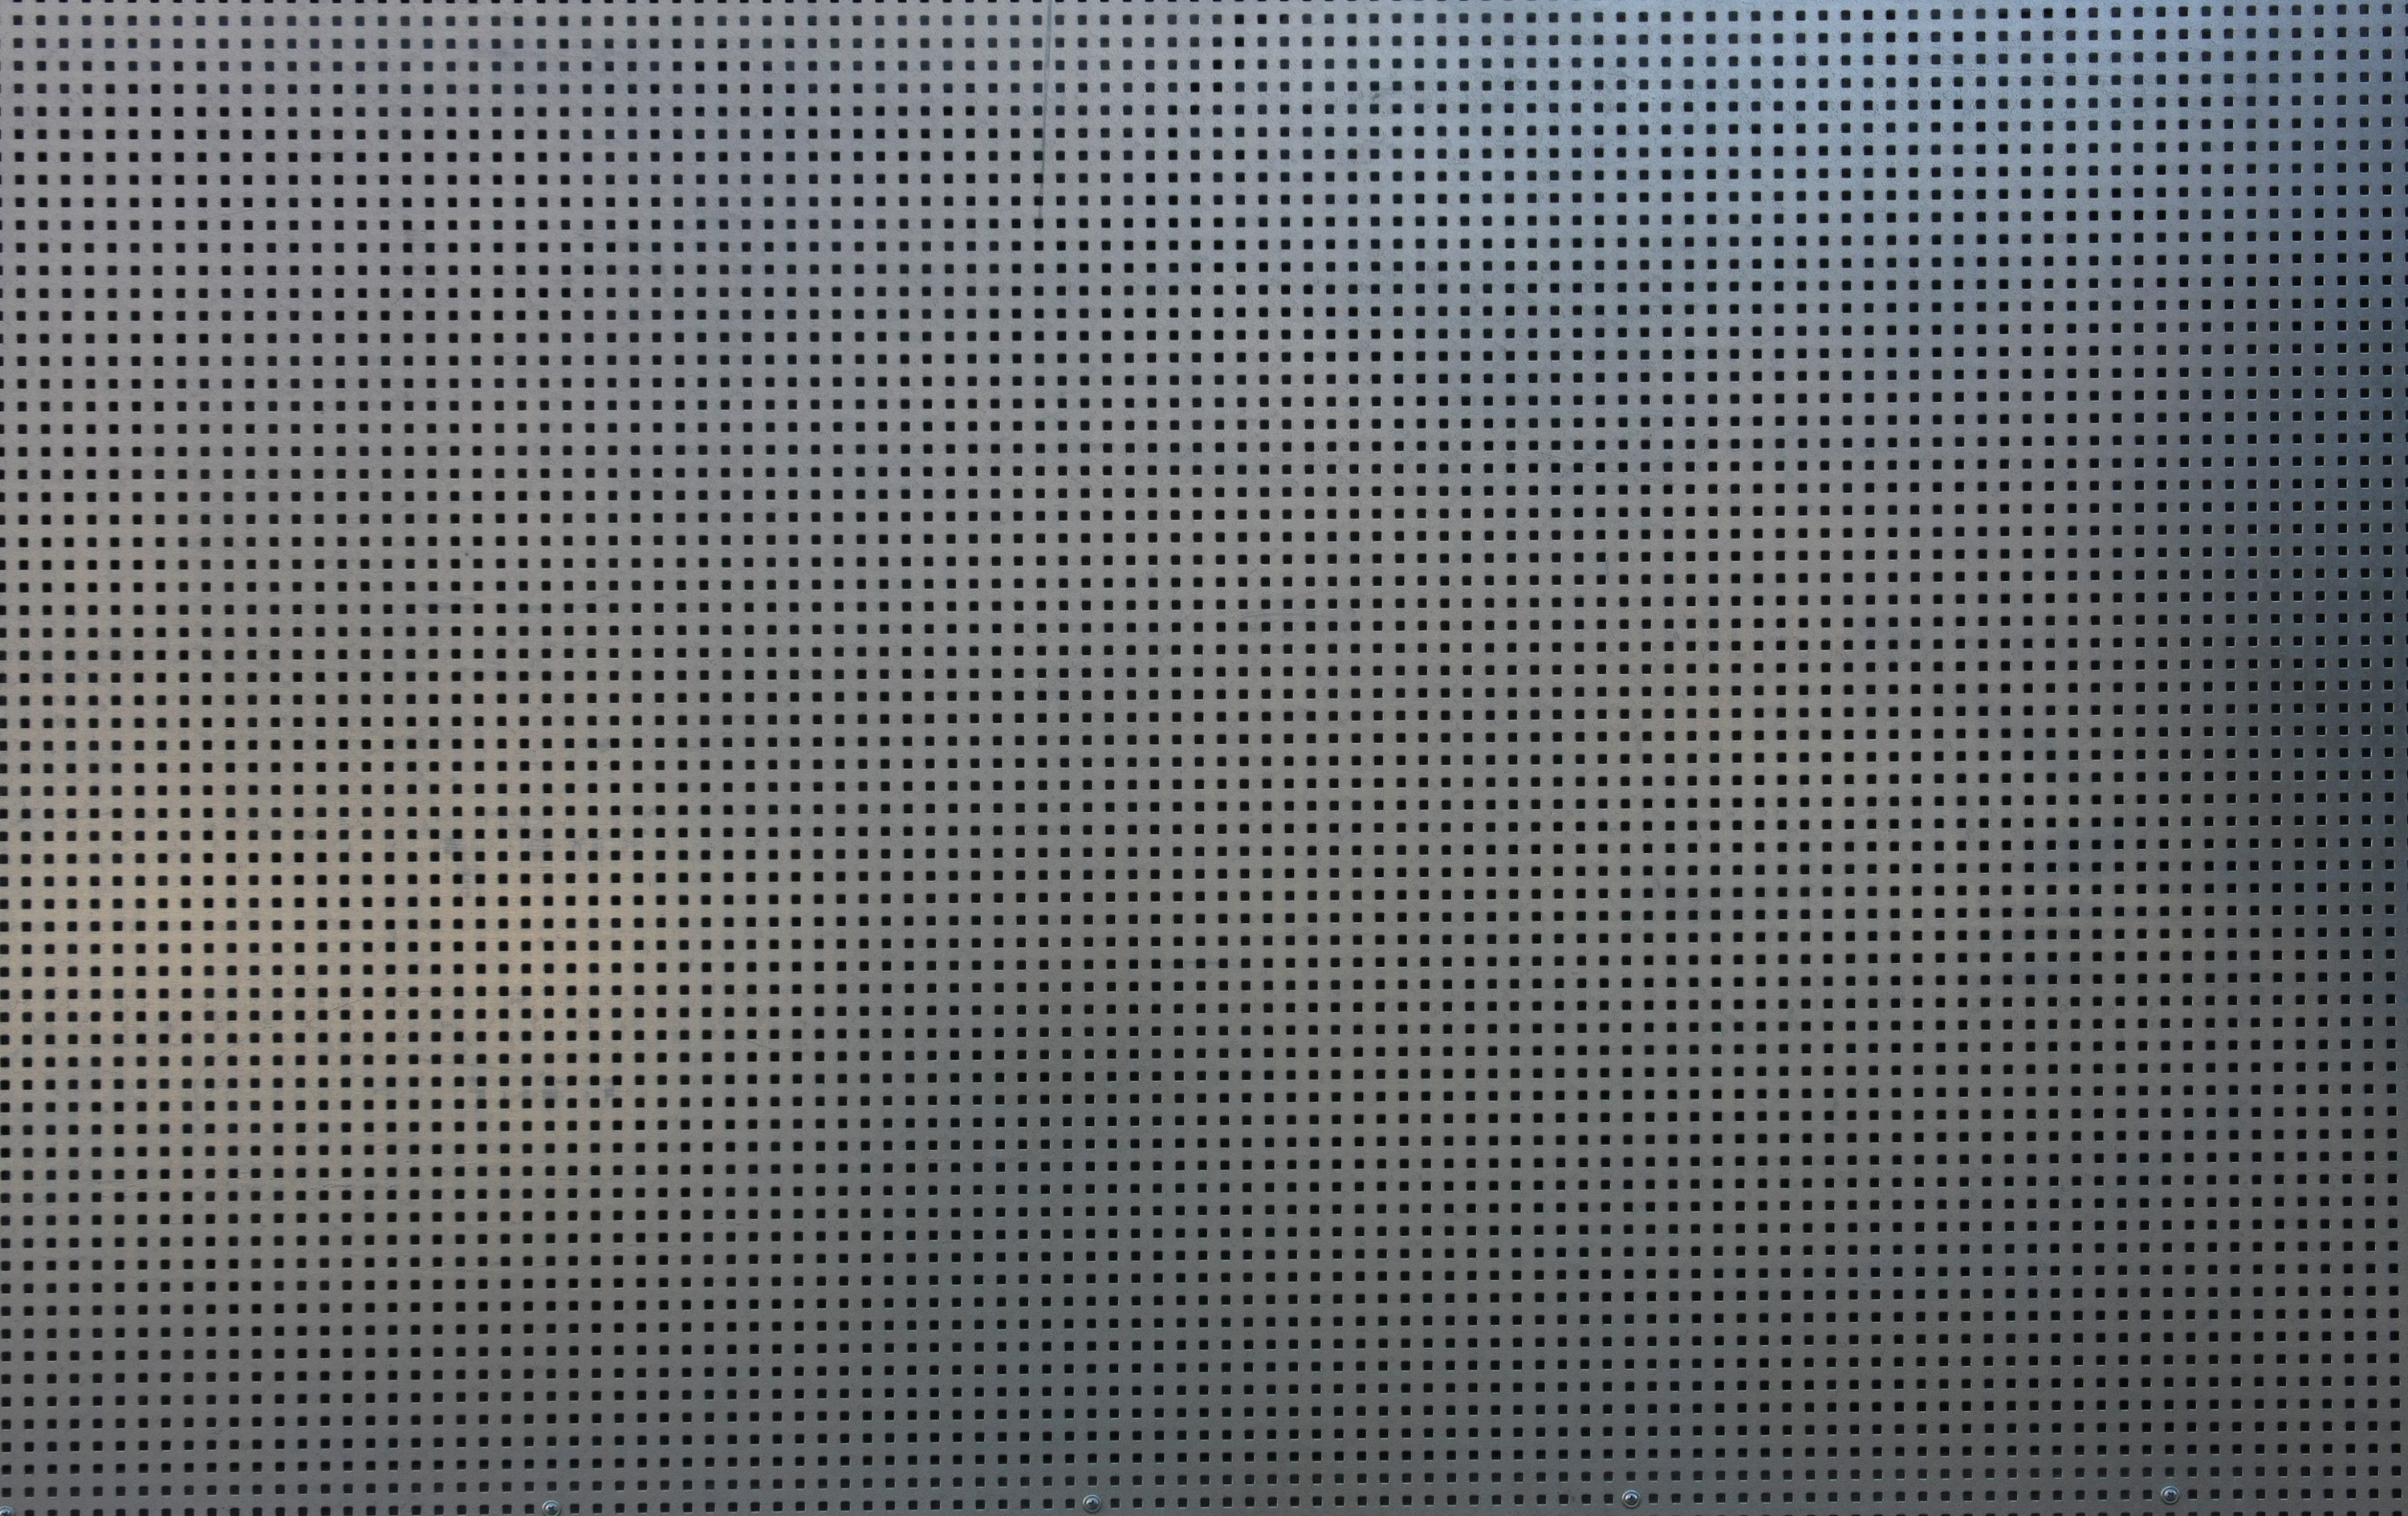 Metal Texture Grille Download Photo Background Metal Grid Texture Background